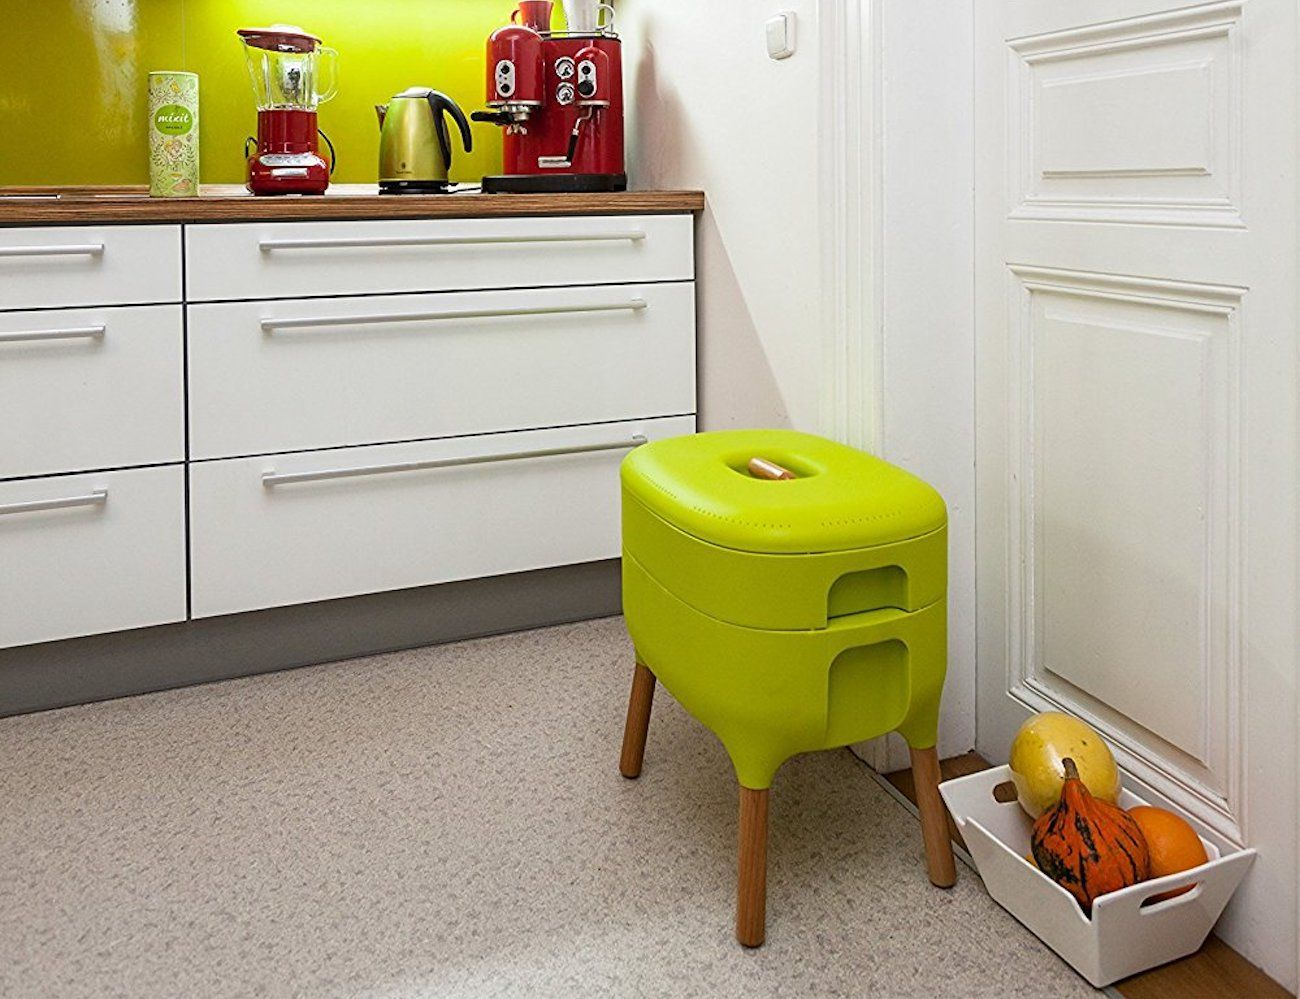 Urbalive Worm Farm Indoor Composter helps you avoid unnecessary landfill waste